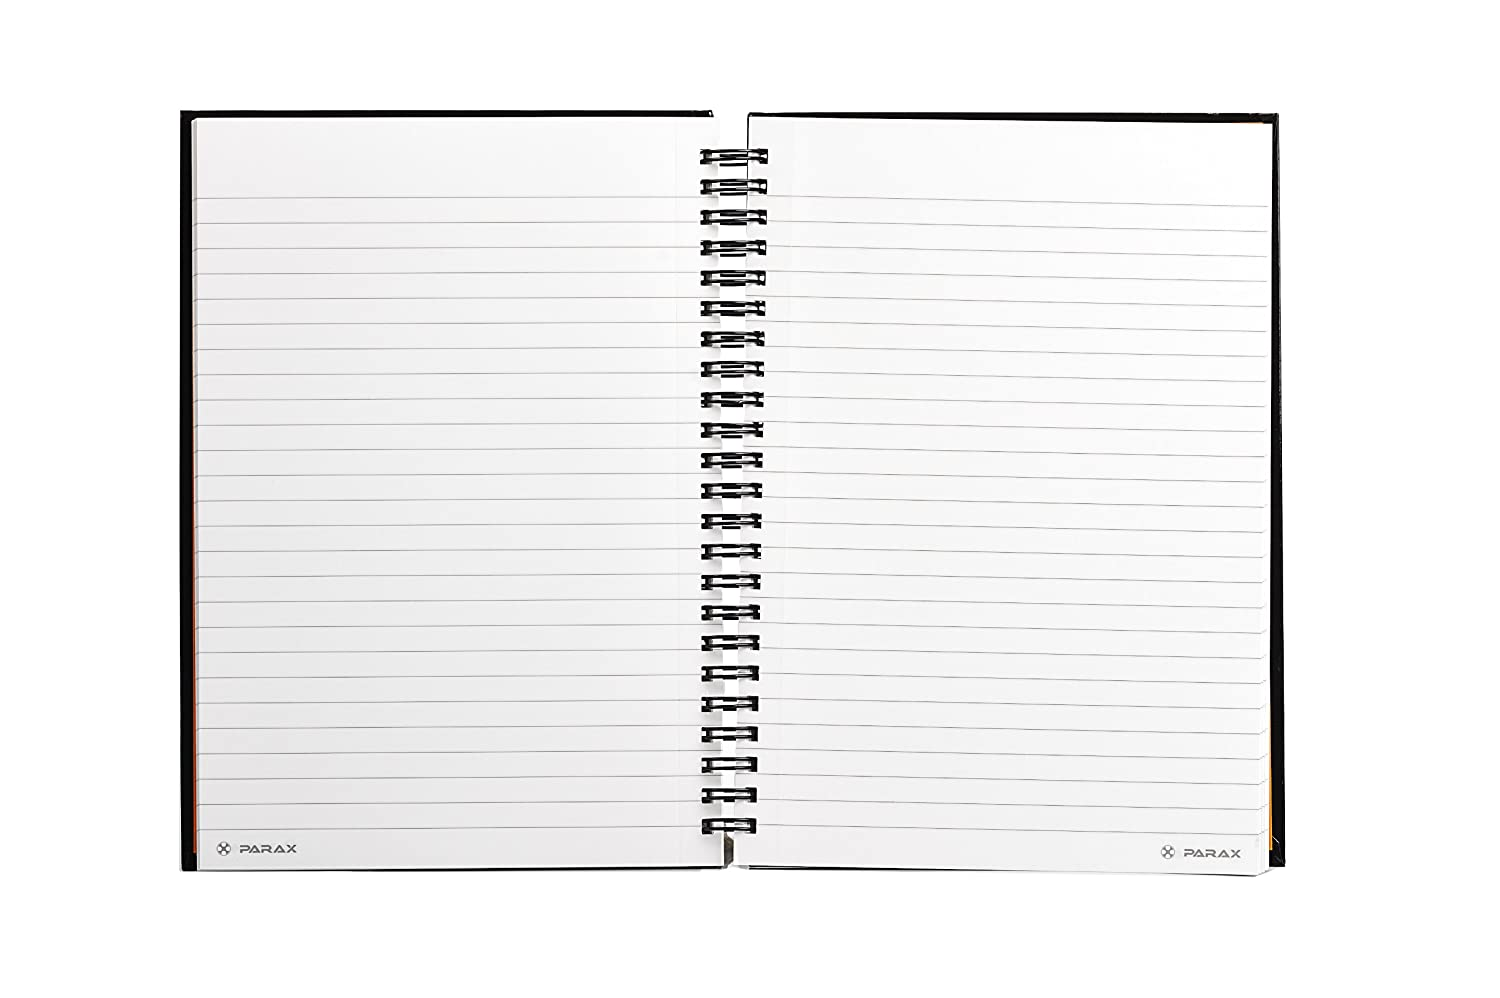 Parax paper a5 148 x 210mm spiral notebook black gloss black parax paper a5 148 x 210mm spiral notebook black gloss black amazon office products pronofoot35fo Image collections